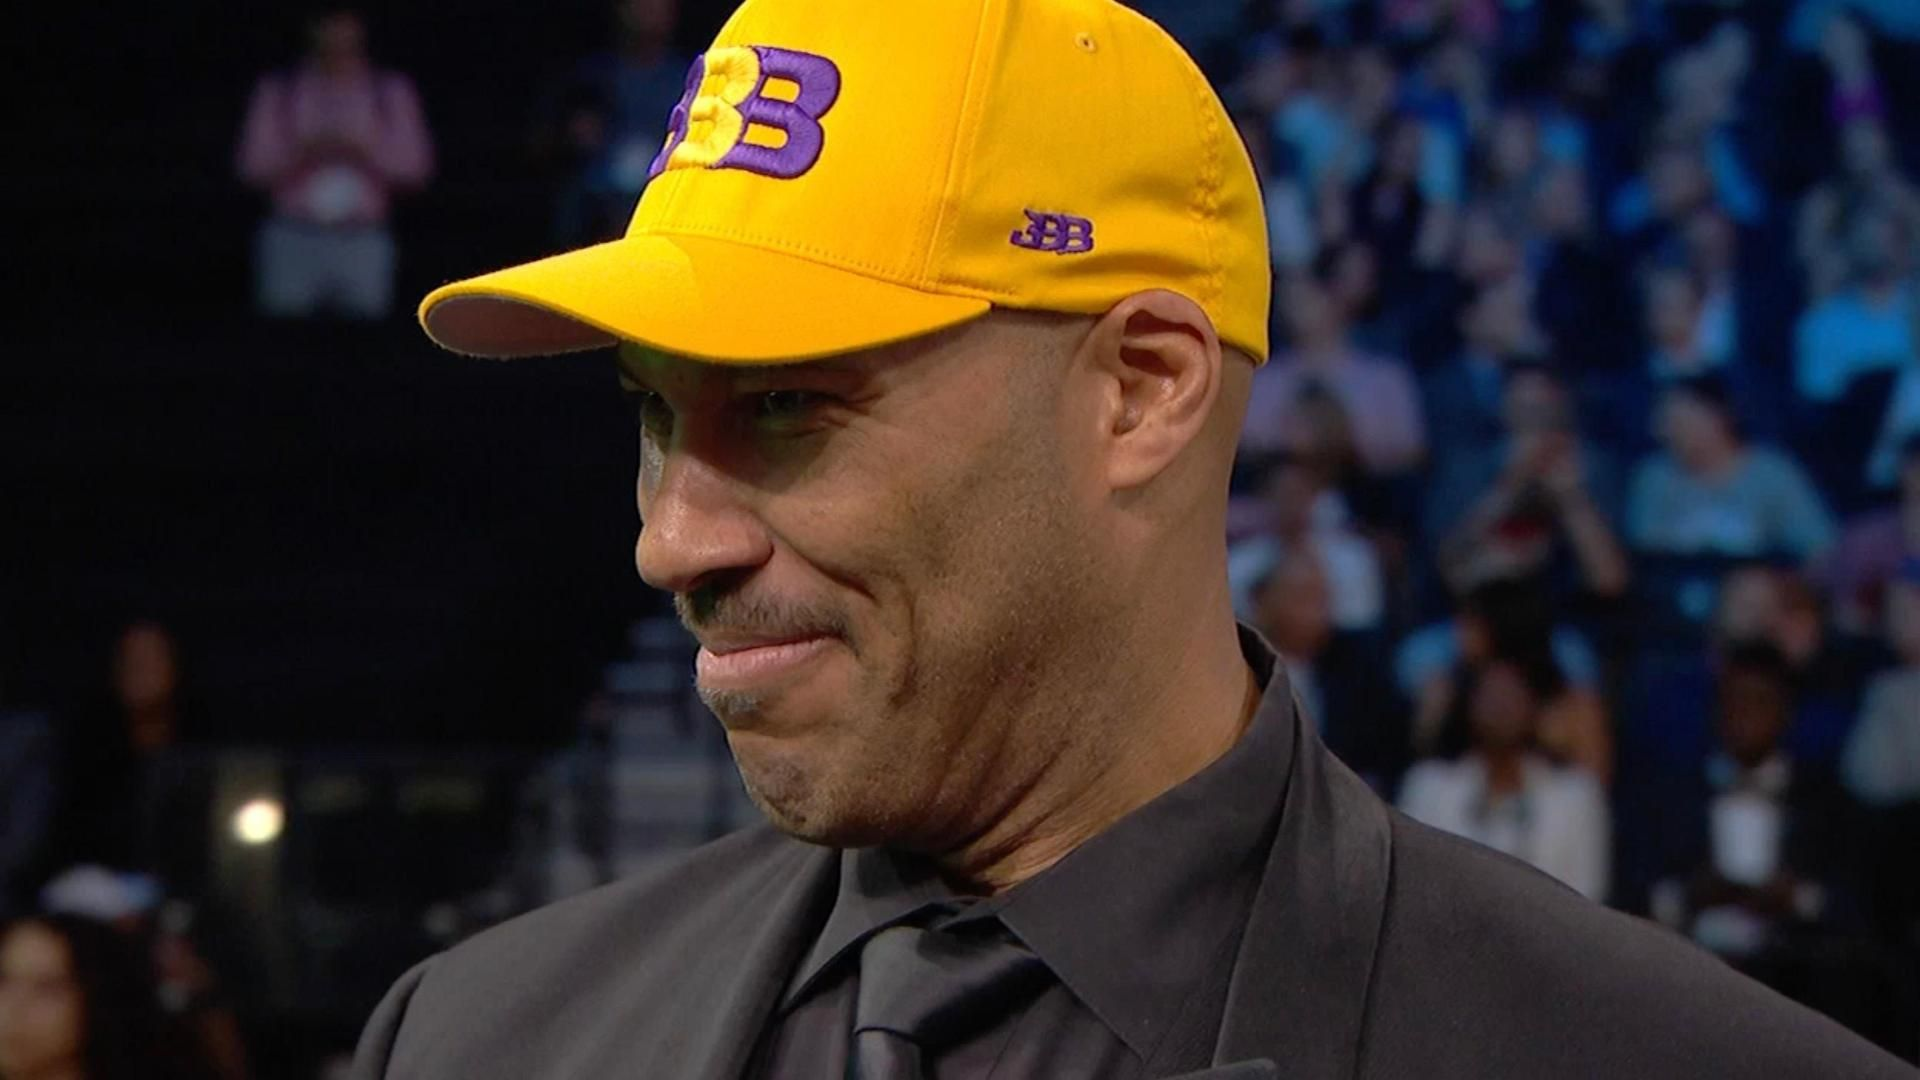 https://secure.espncdn.com/combiner/i?img=/media/motion/2017/0623/dm_170622_lavar_ball_comments_nba_draft188/dm_170622_lavar_ball_comments_nba_draft188.jpg